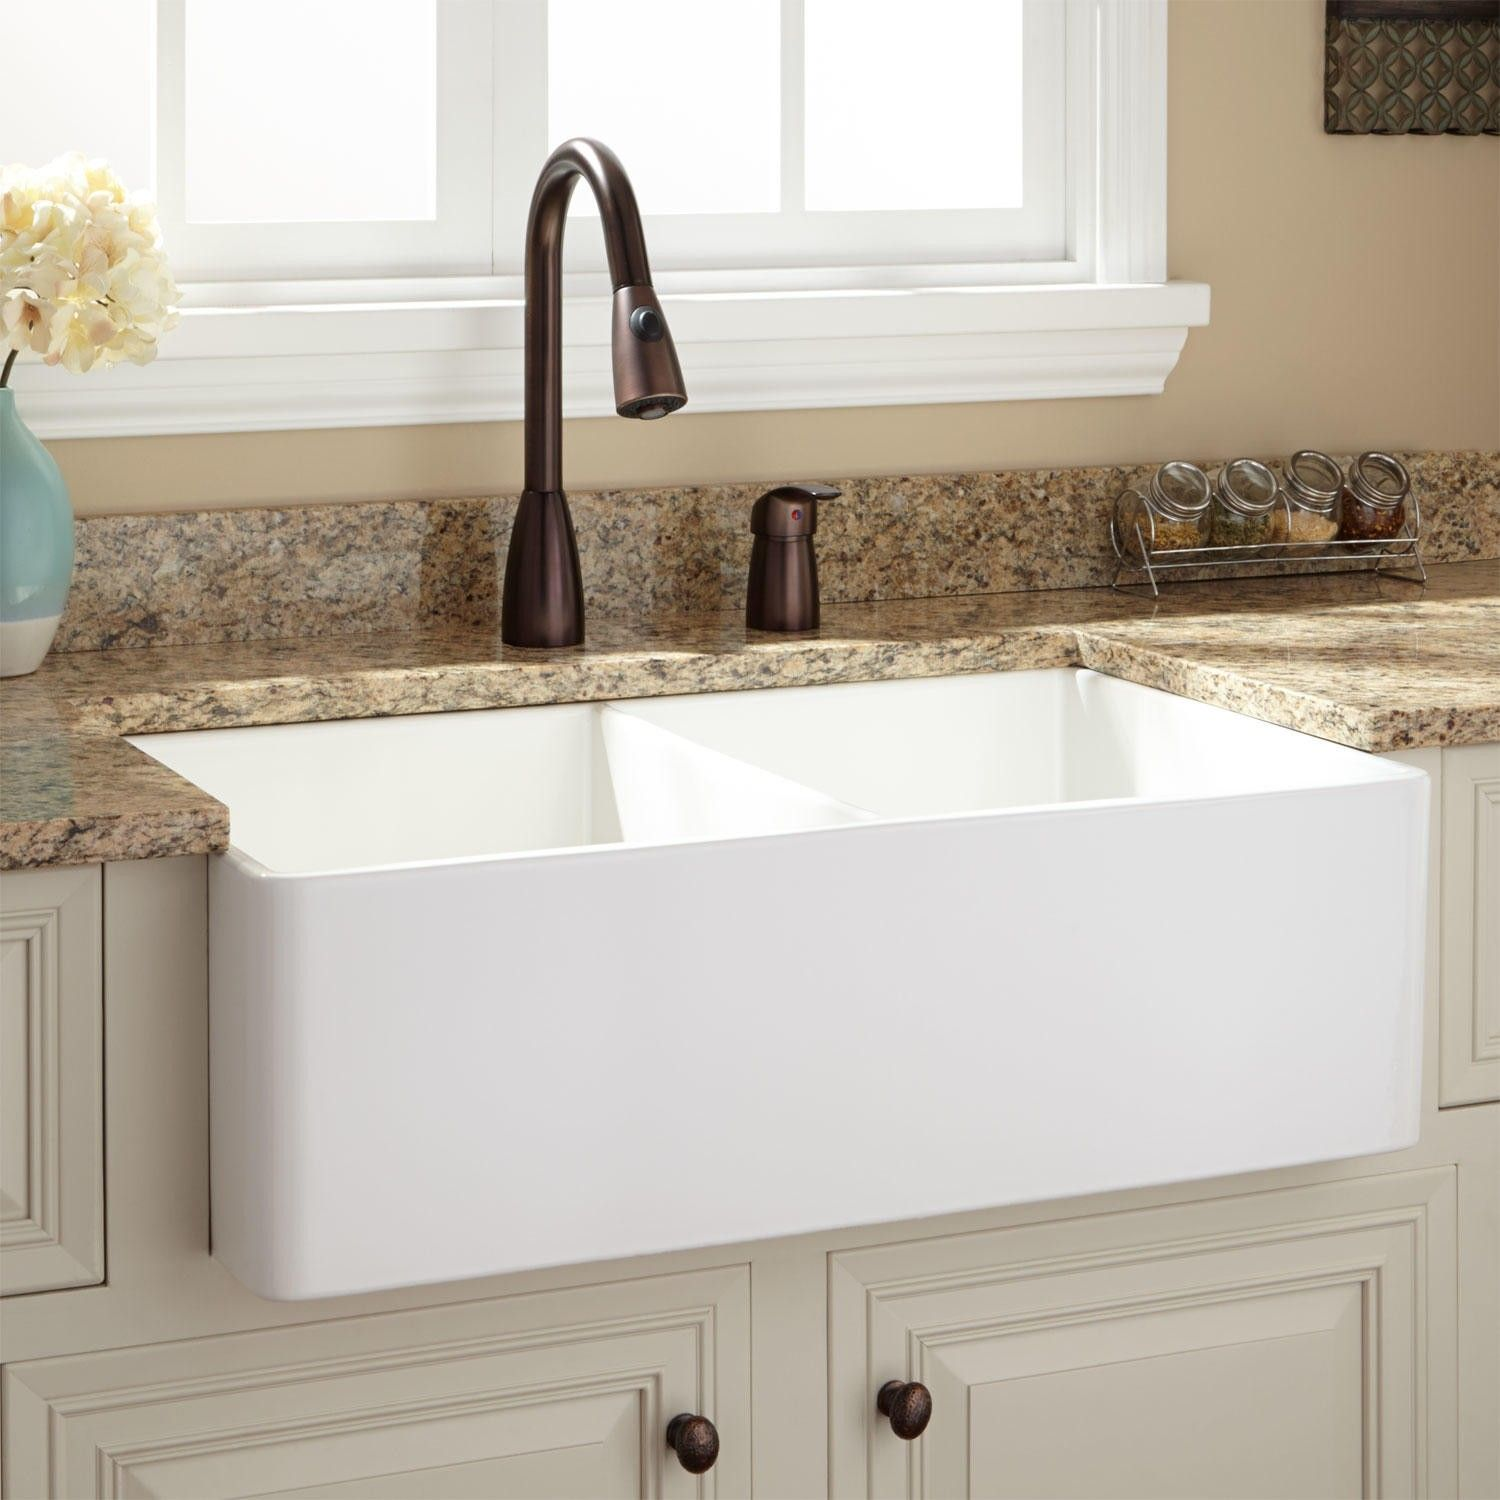 33 Baldwin Double Bowl Fireclay Farmhouse Sink Smooth A White Sinks Kitchen